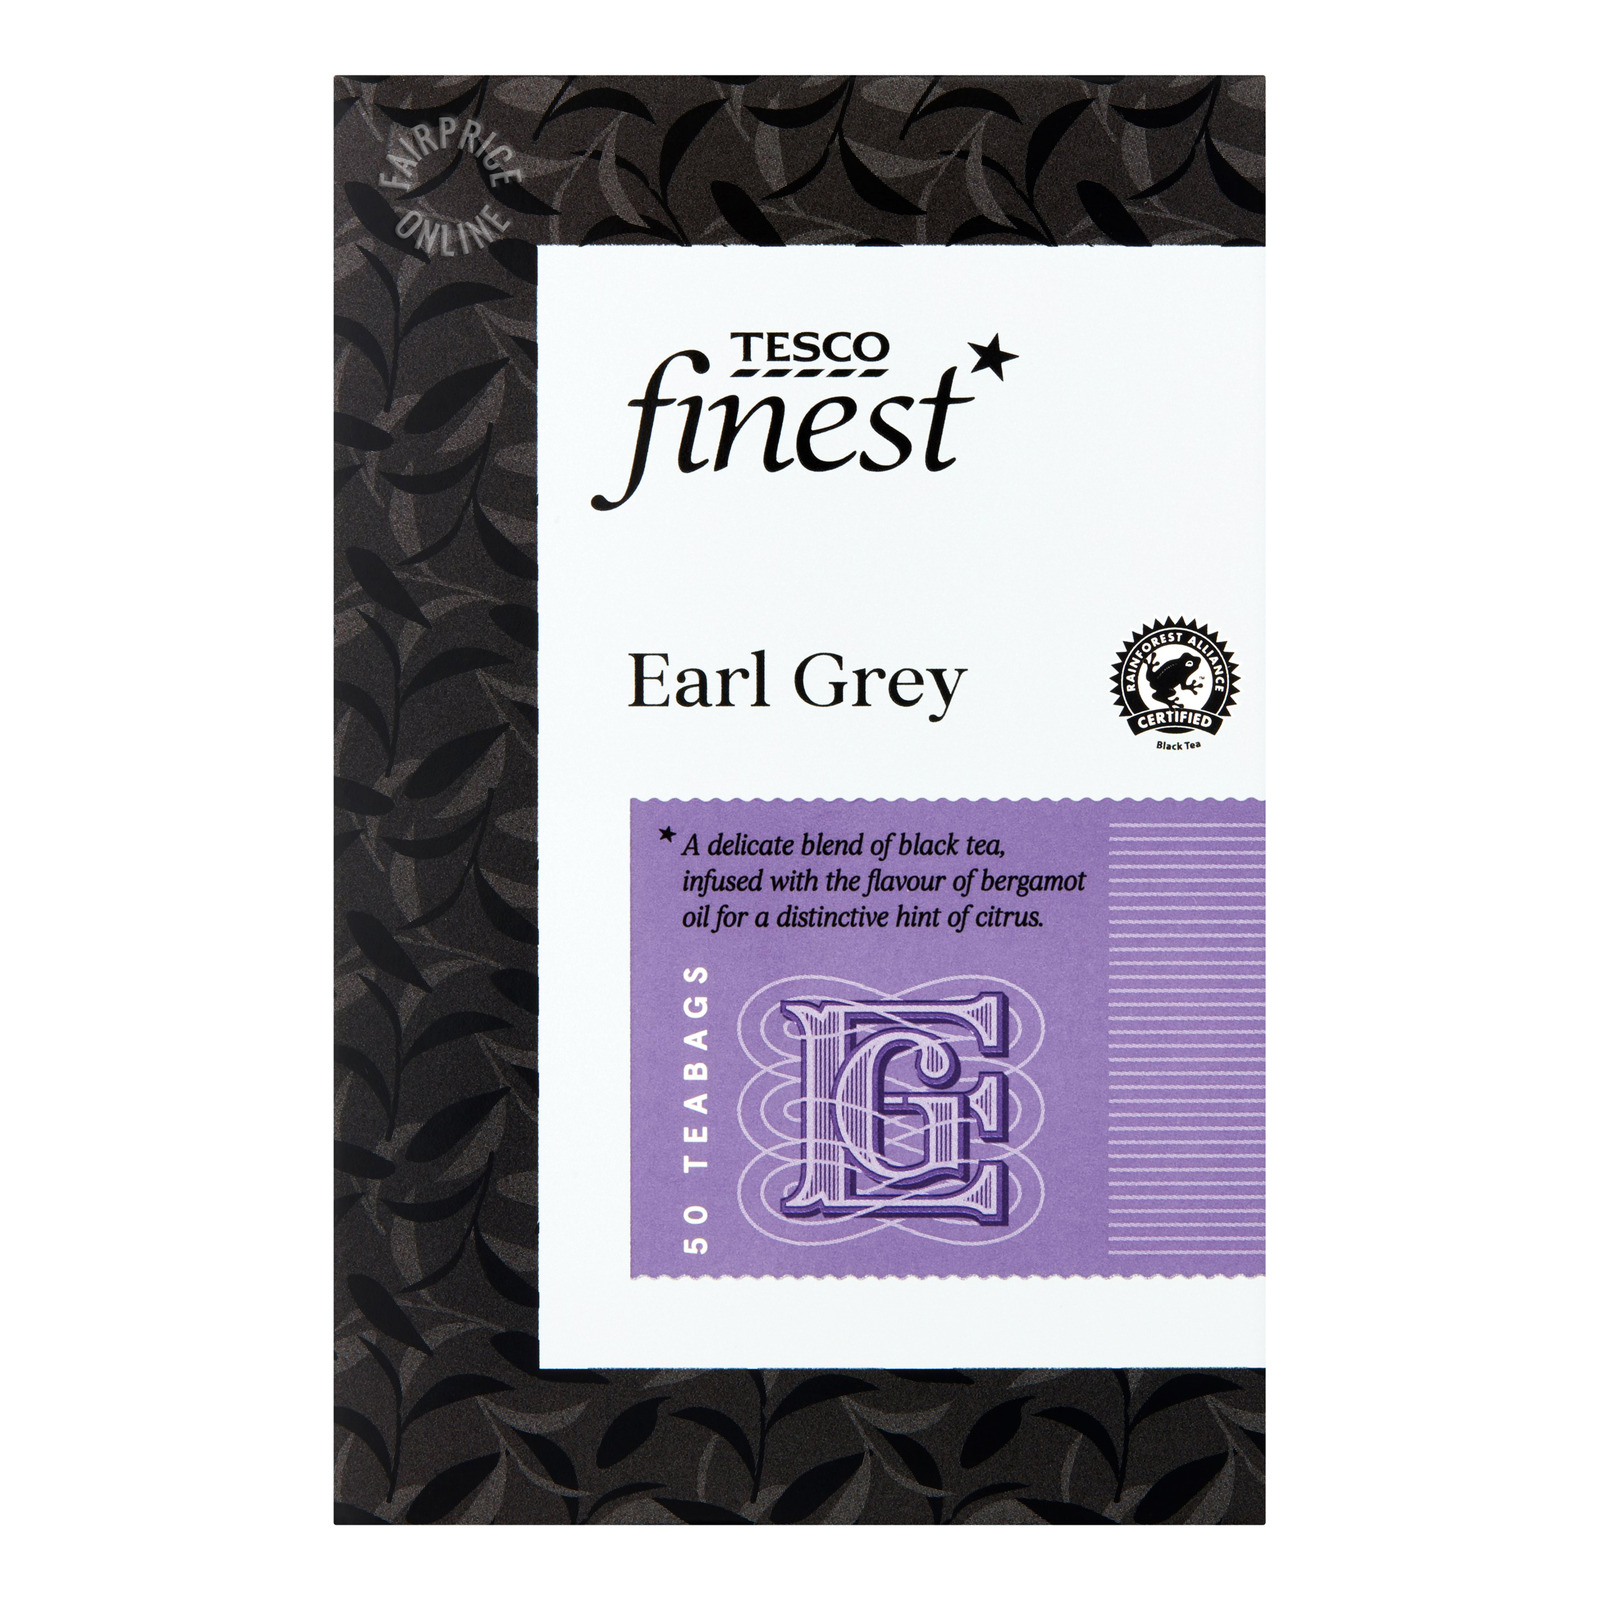 Tesco Finest Tea Bags - Earl Grey